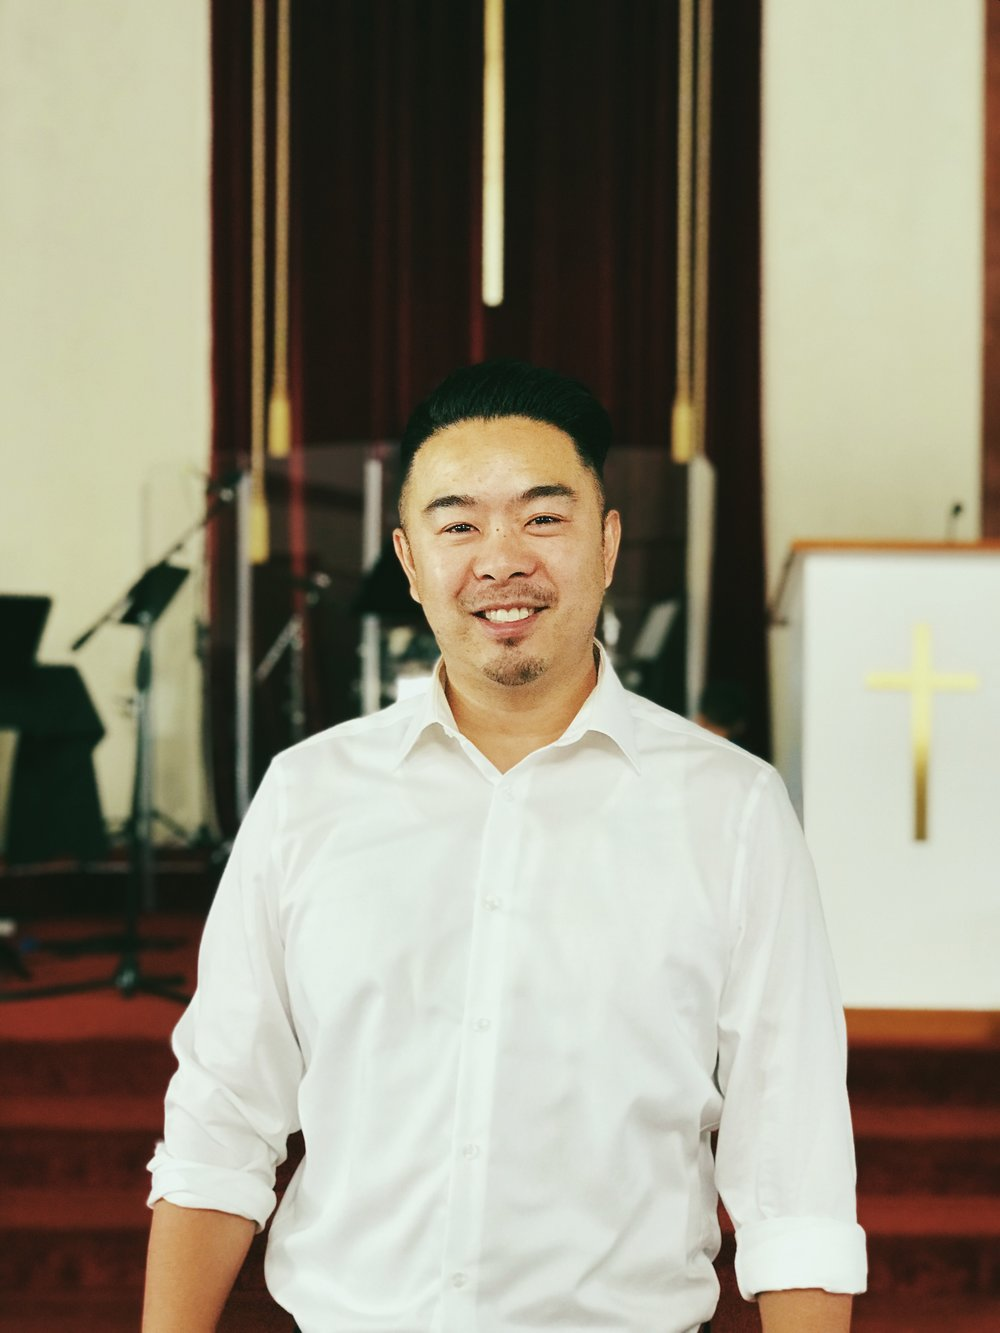 Clifton Jang –  Campus Pastor - Clifton was born and raised in San Francisco and grew up a hardcore, Giants, 49ers, and Warriors fan.  He gave his life to Christ in High School and has been on an incredible journey ever since.  Clifton has served in the youth ministry, choir, and as a worship leader for many years.  Missions has also played a big role in Clifton's life, as he has been serving with RE:ACTS Ministries, a non-profit missions organization, since 2009.  After years of working in the insurance industry, Clifton felt a calling from God to love and serve the people in San Francisco.  Clifton was licensed as a pastor in January 2018 by Cornerstone Trinity Baptist Church.  Clifton serves as the campus pastor of CTX, a church plant launched by CTBC in April 2018.  He is also finishing up his MDiv from Gateway Seminary.